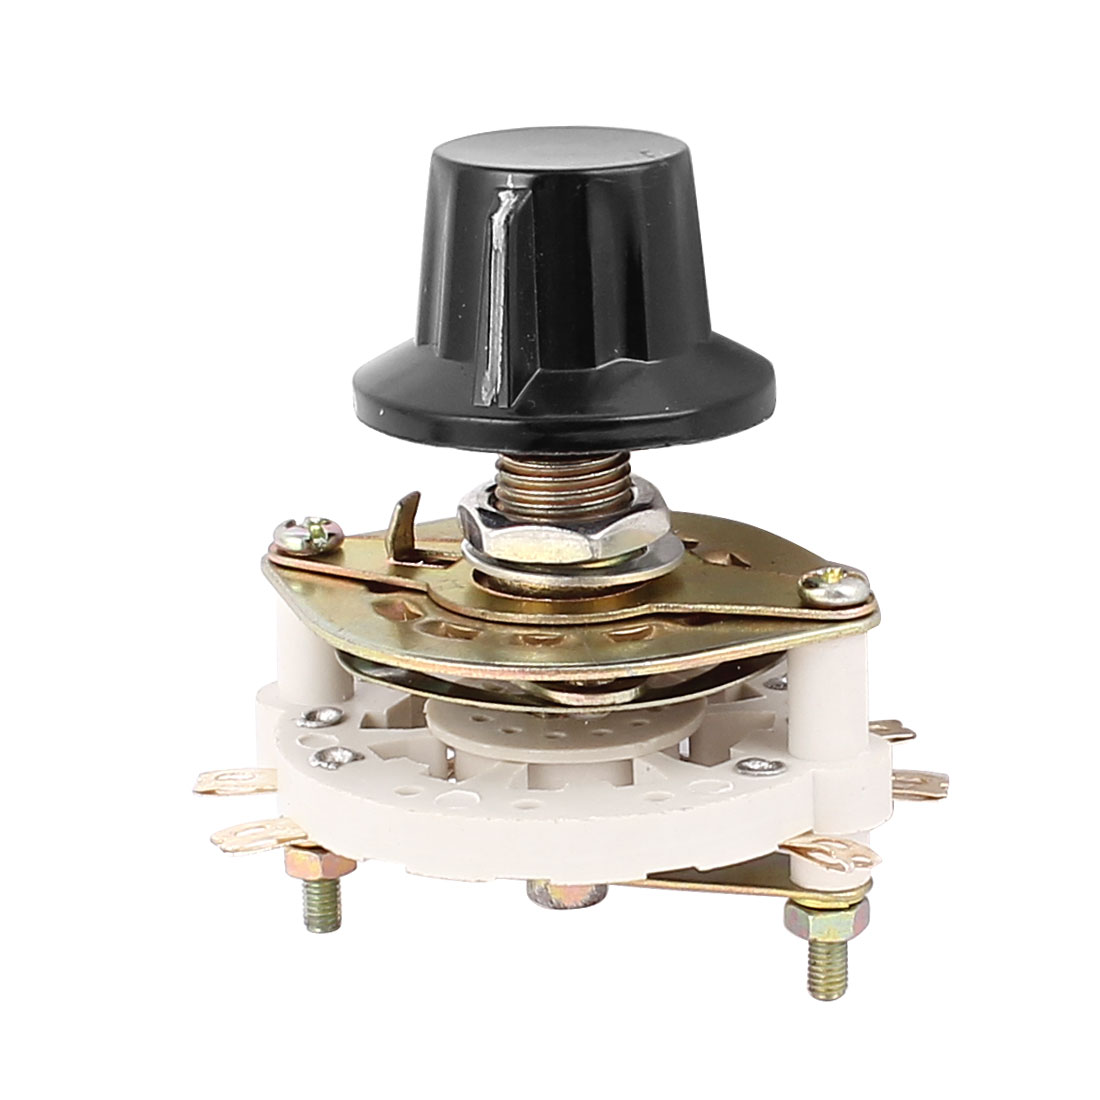 KCT 2 Pole 2 Throw 6mm Shaft Band Channel Rotary Switch Selector w Cap